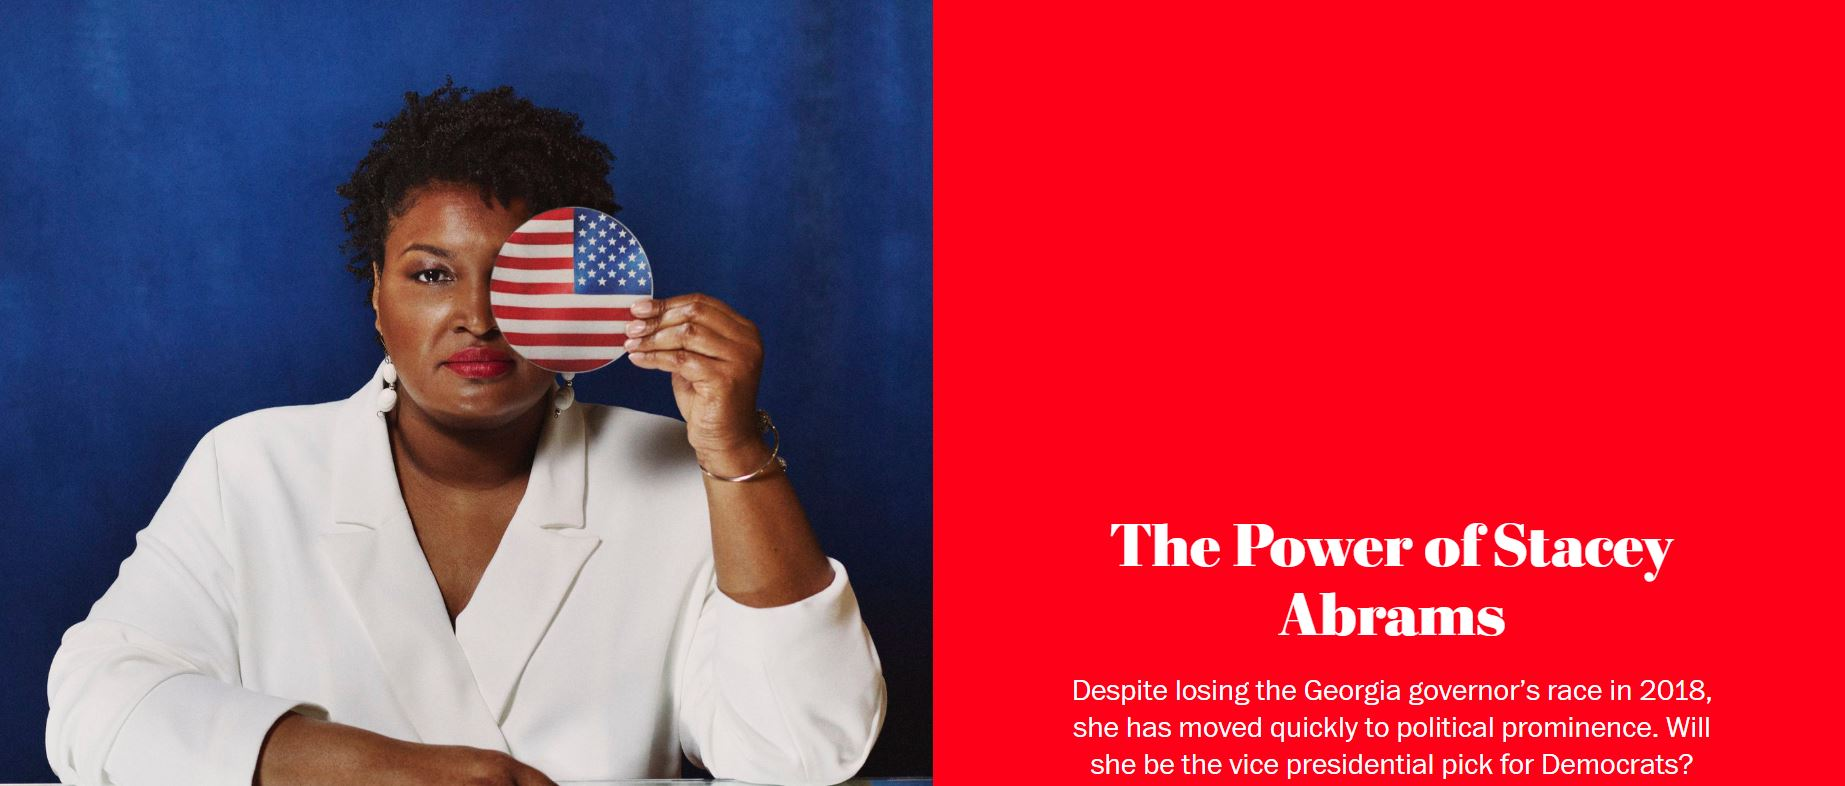 2020 05 17 07 35 16 Stacey Abrams has ascended to political prominence. How has she harnessed so muc Symbolic Pics of the Month 06/20